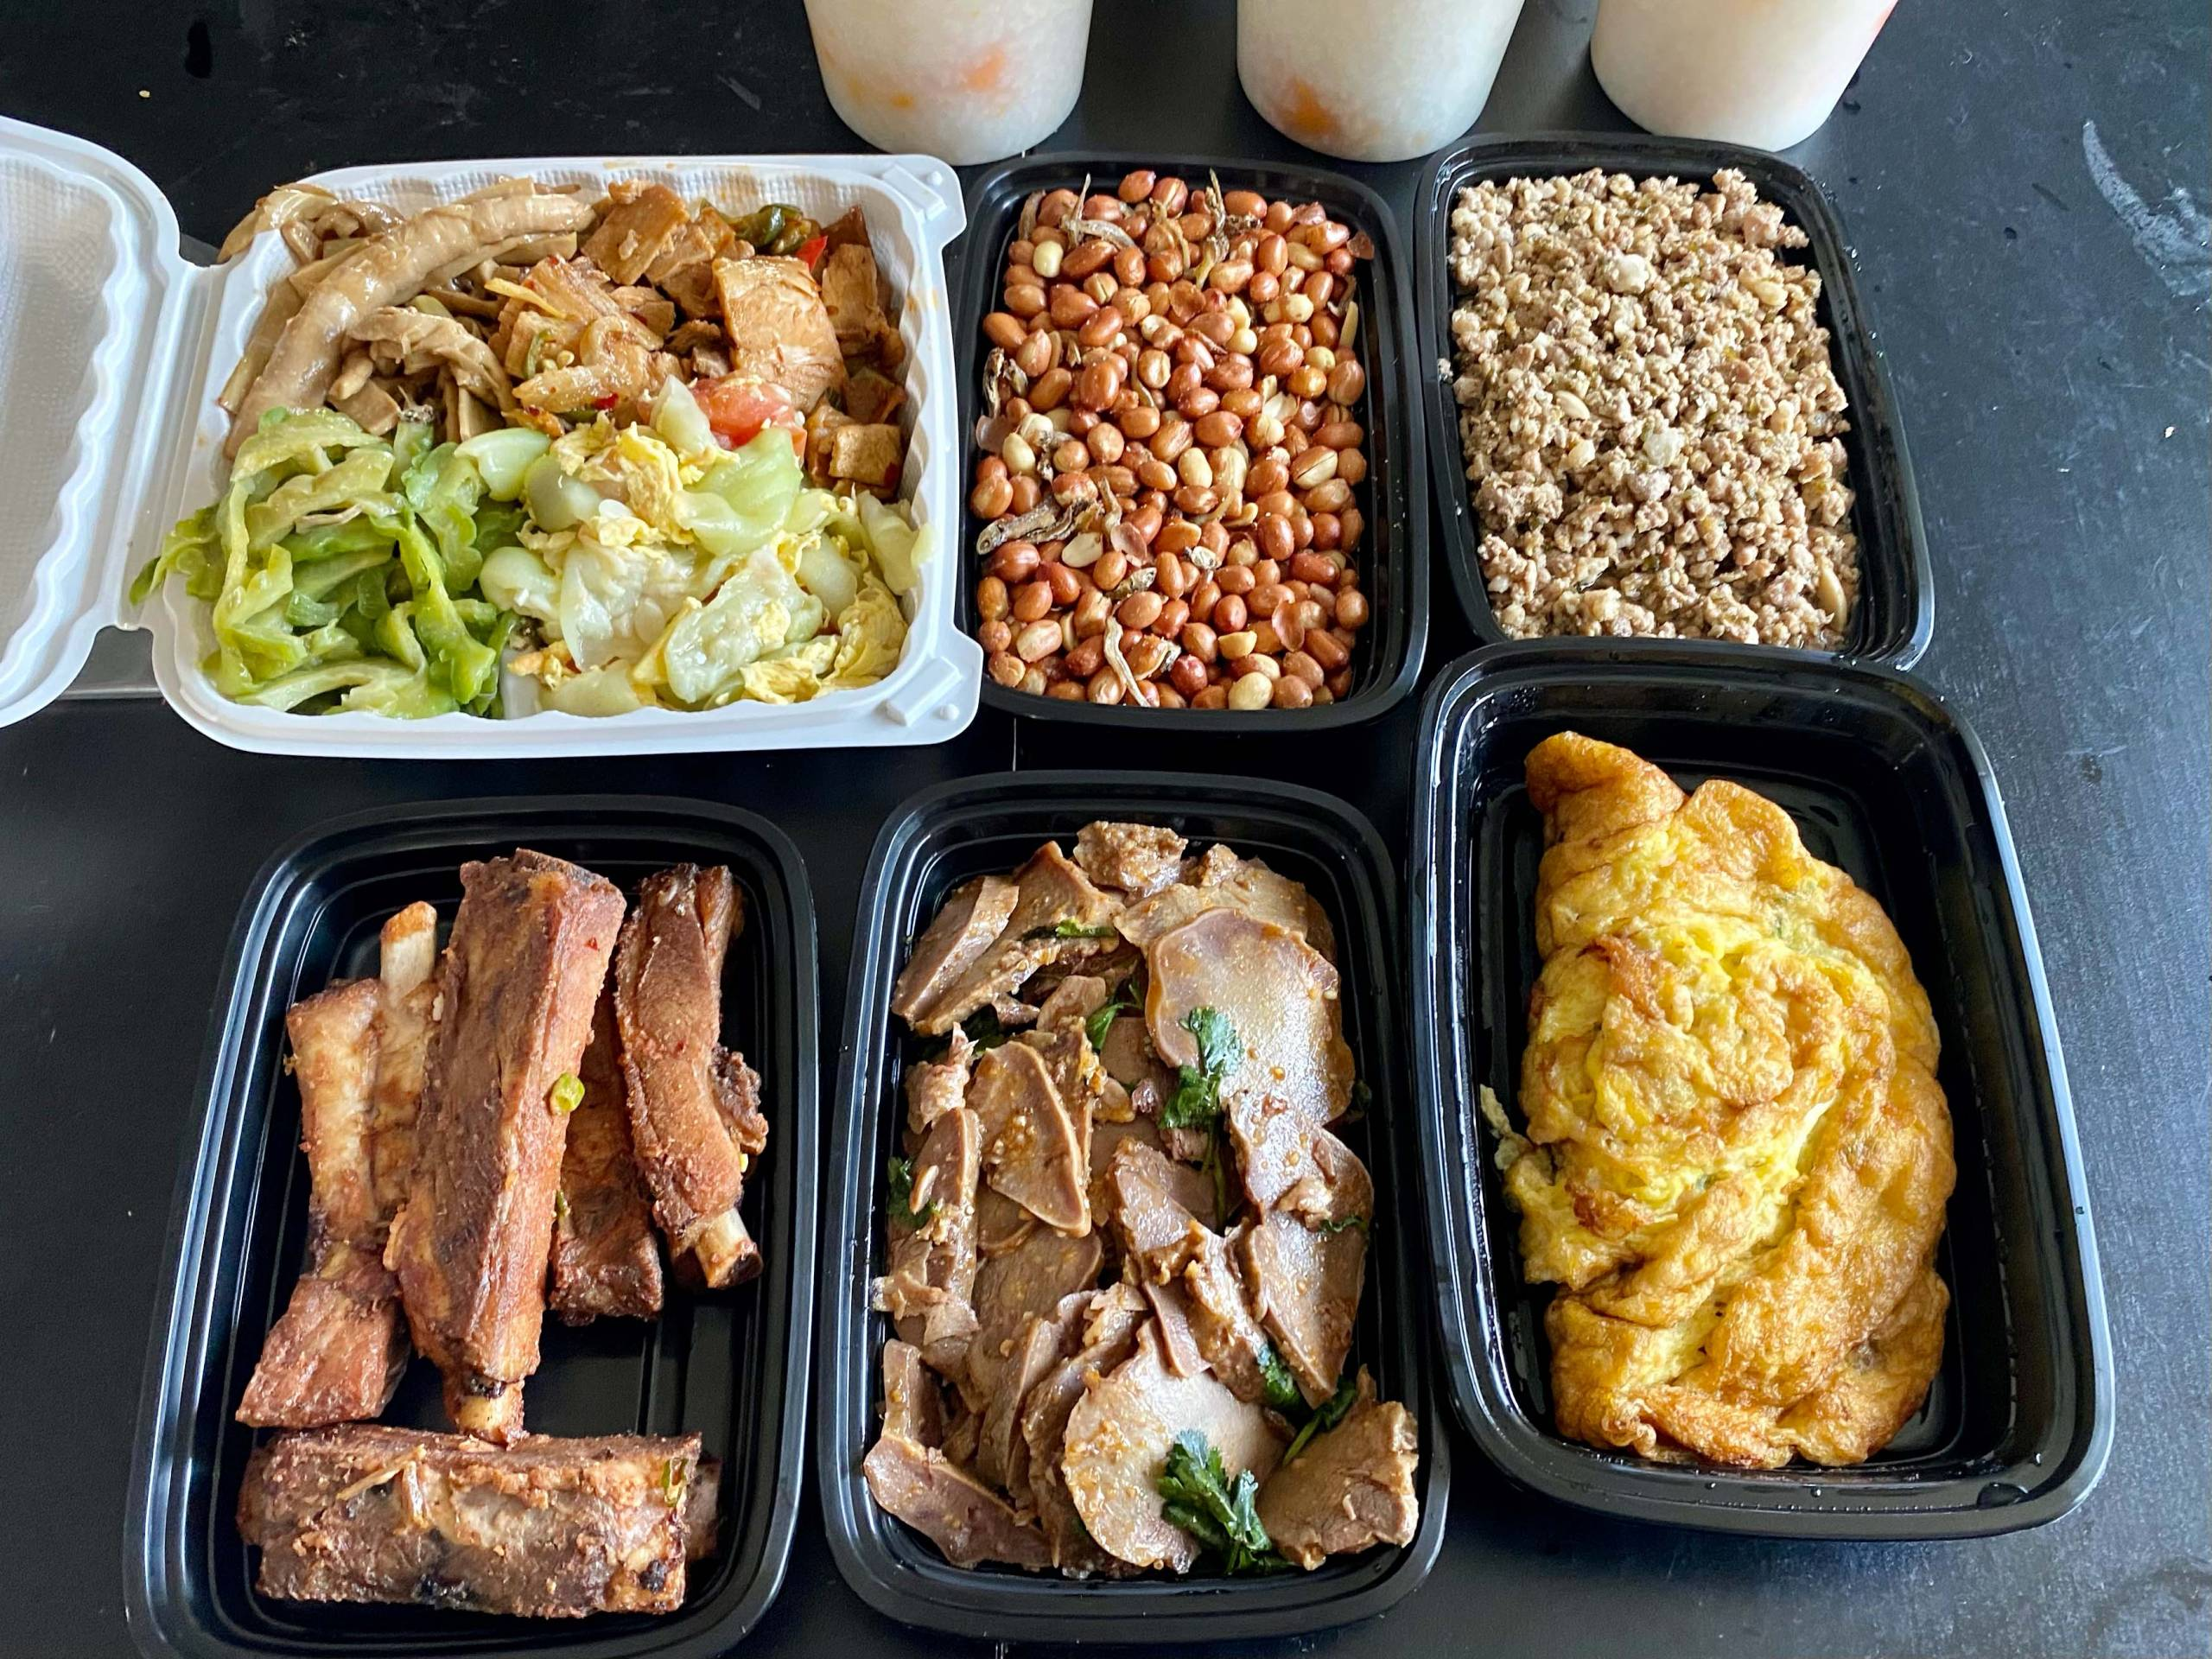 Side dishes to be eaten with Taiwan Porridge Kingdom's sweet potato congee: pork ribs, pig's tongue, a dried radish omelet, fried peanuts and more.